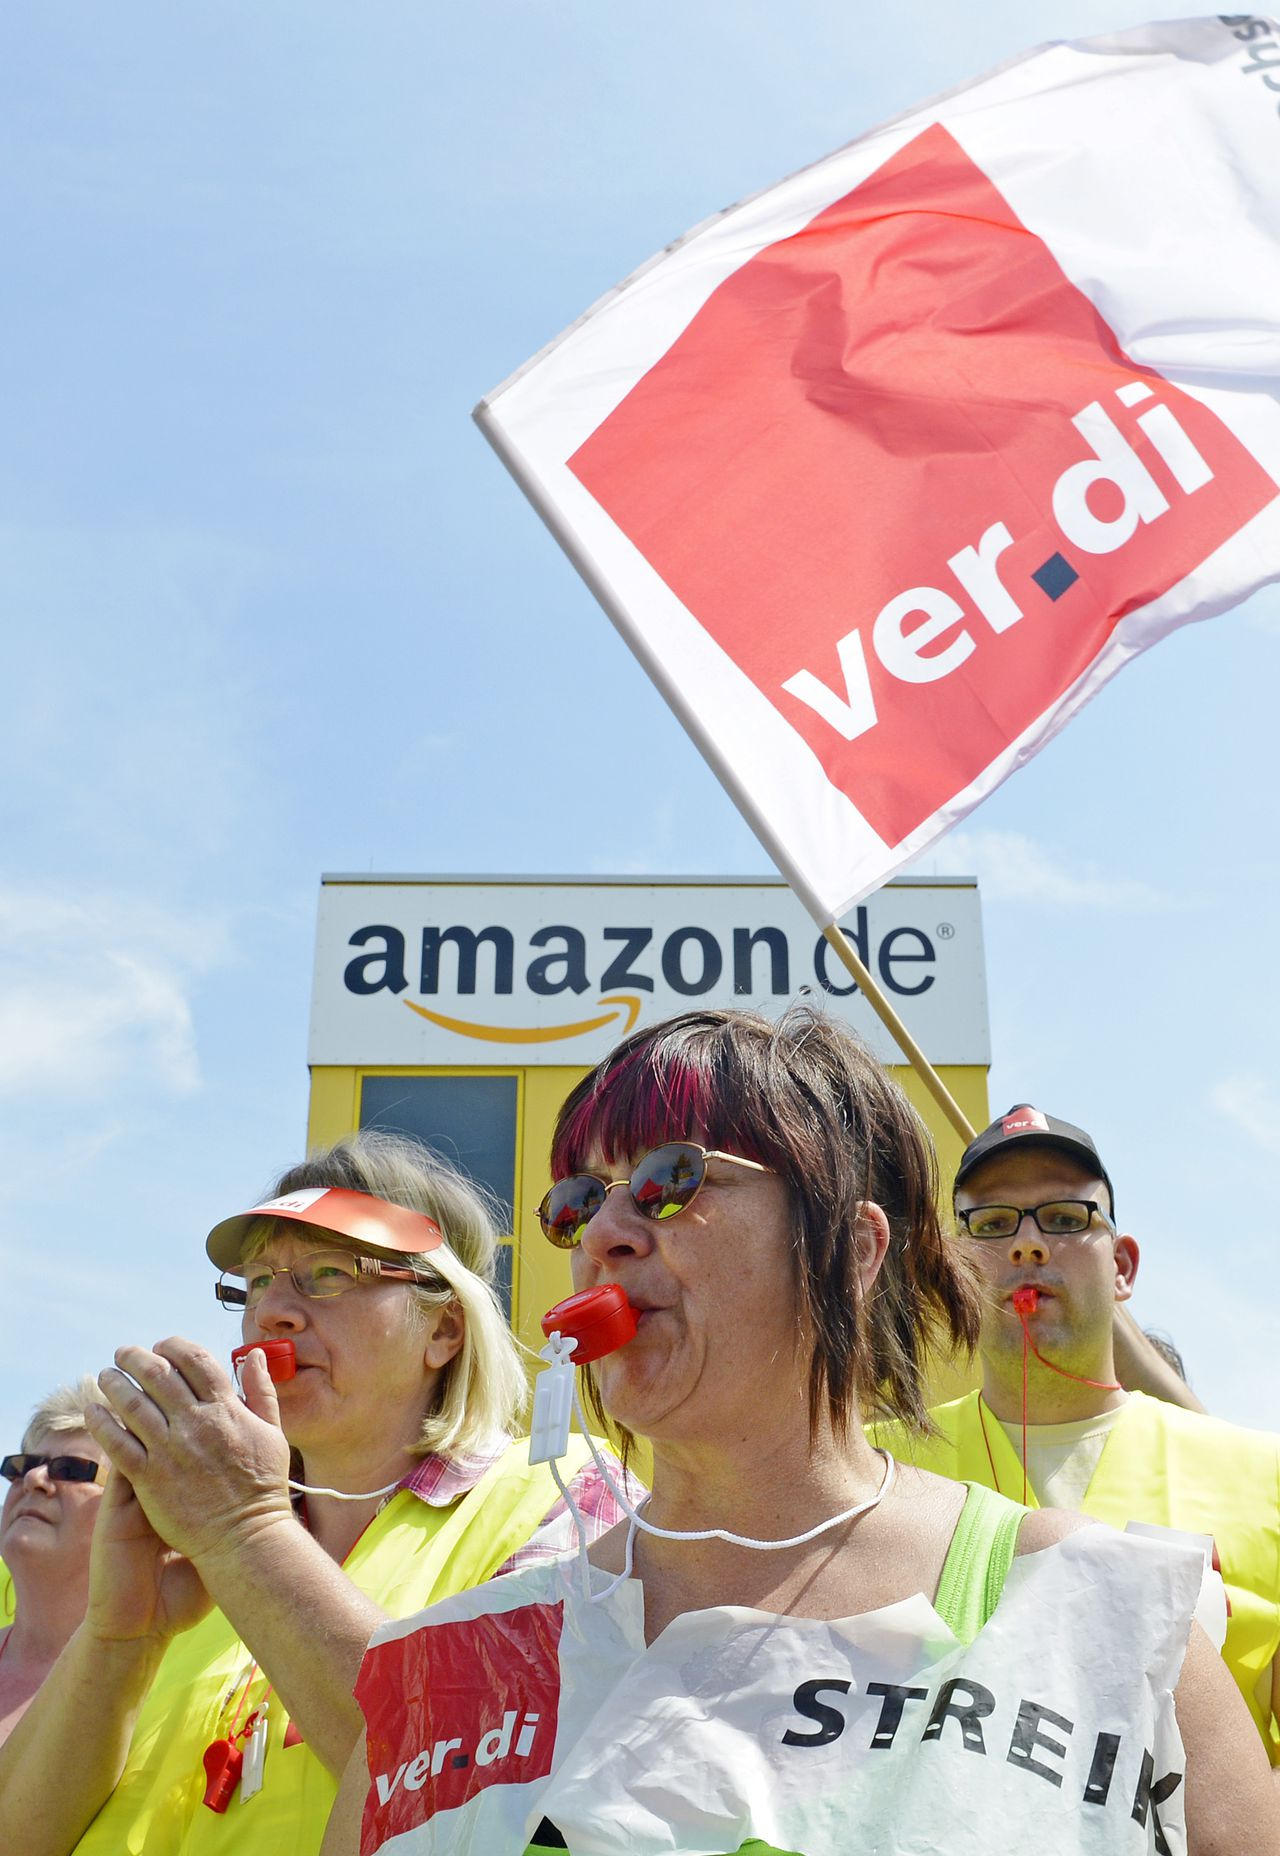 Employees of online retailer Amazon protest during their strike in front of the company's branch in Leipzig, central Germany, Monday, June 17, 2013. Union members at online retailer Amazon's German operations have begun a two-day strike to ratchet up pressure on the company over pay demands. The union says Amazon's roughly 5,300 workers at the sites receive lower wages than their peers in the online retail industry. (AP Photo/Jens Meyer)